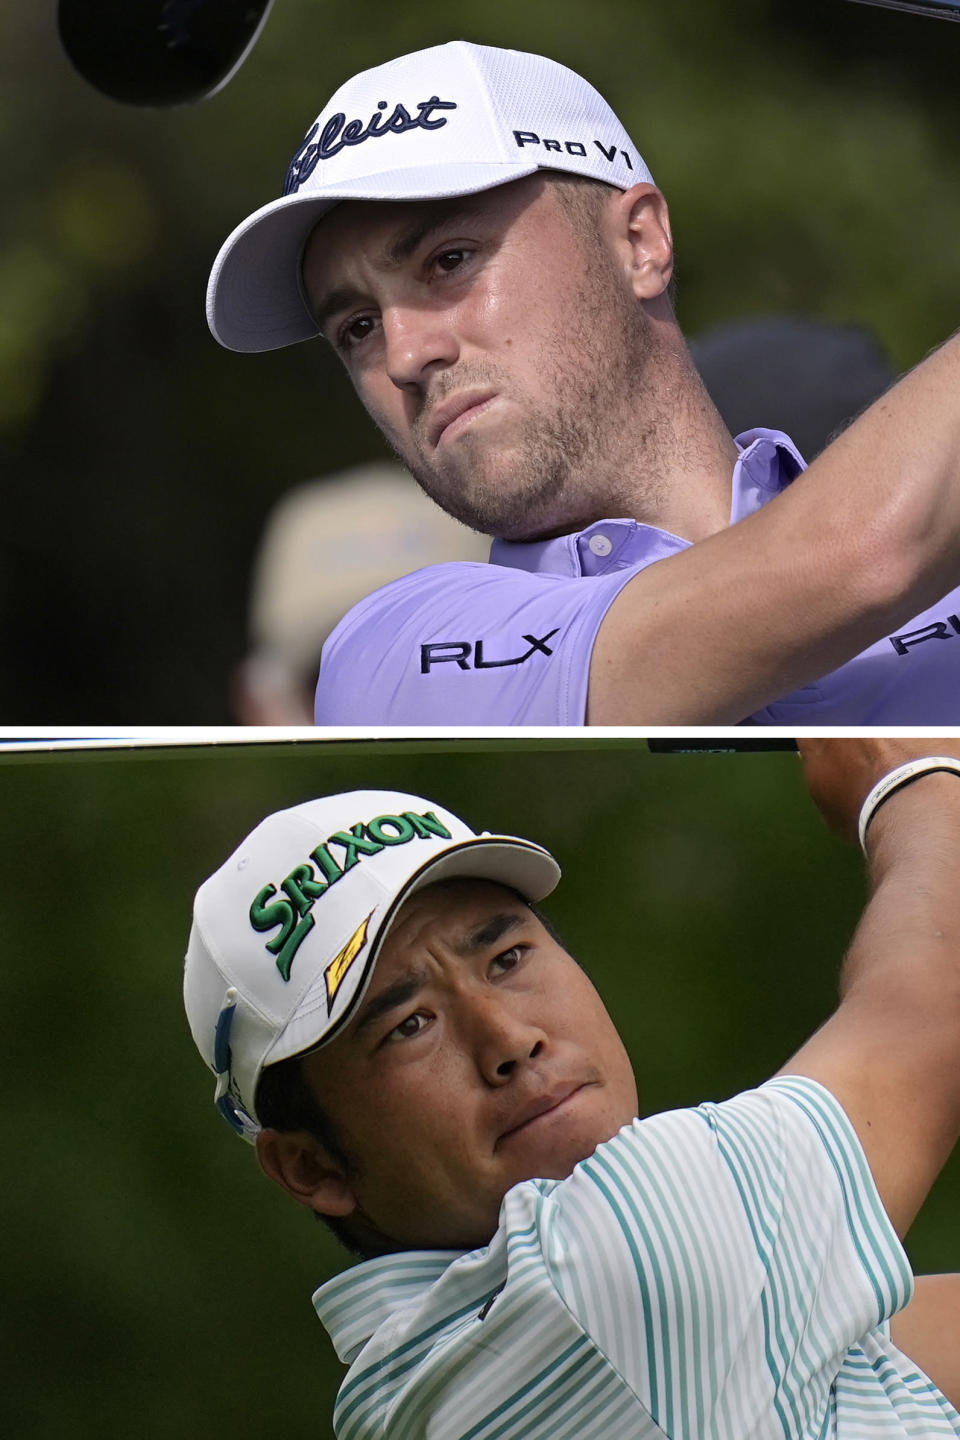 FILE - Justin Thomas, top, watches his tee shot on the first hole during the first round of the PNC Championship golf tournament in Orlando, Fla., in a Saturday, Dec. 19, 2020, file photo. Hideki Matsuyama, bottom, tees off on the fourth hole during the third round of the Masters golf tournament in Augusta, Ga., in a Saturday, April 10, 2021, file photo. The PGA Championship is scheduled for May 20-23, 2021, at Kiawah Island in South Carolina. (AP Photo/Gregory Bull, File)